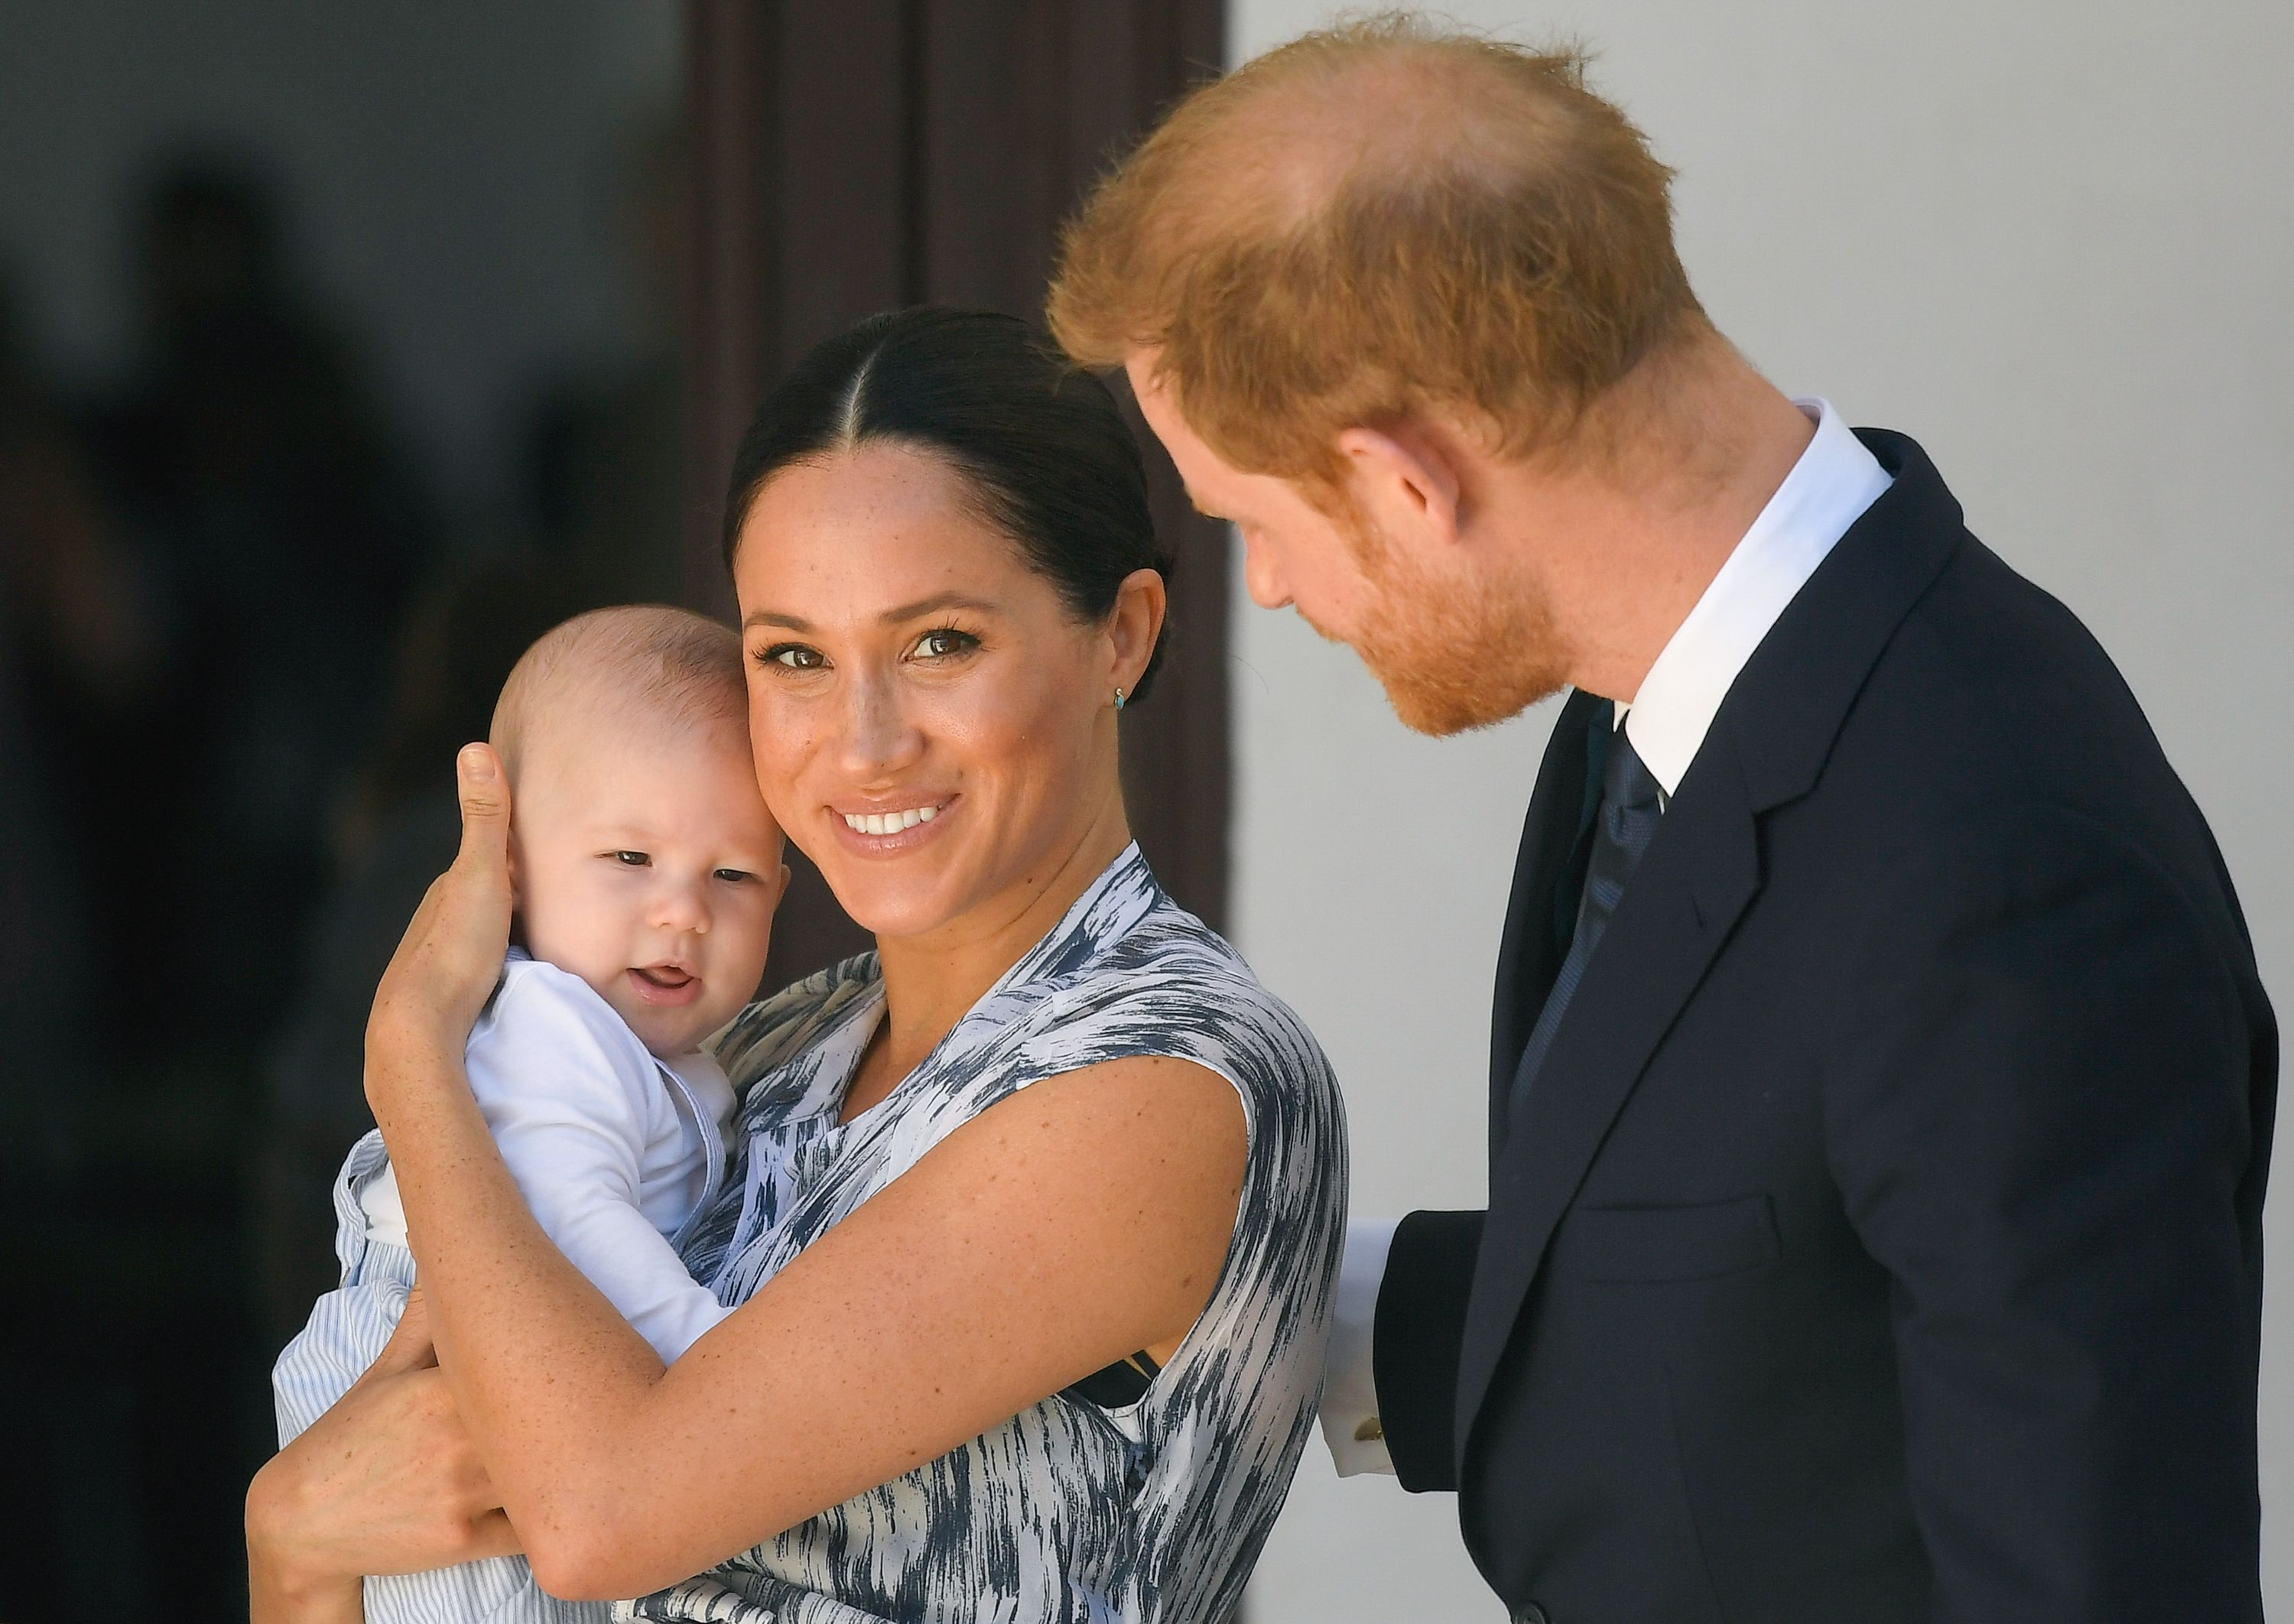 Baby Archie Mountbatten-Windsor, Duchess Meghan, and Prince Harry meet Archbishop Desmond Tutu during their royal tour of South Africa on September 25, 2019, in Cape Town   Photo: Pool/Samir Hussein/WireImage/Getty Images